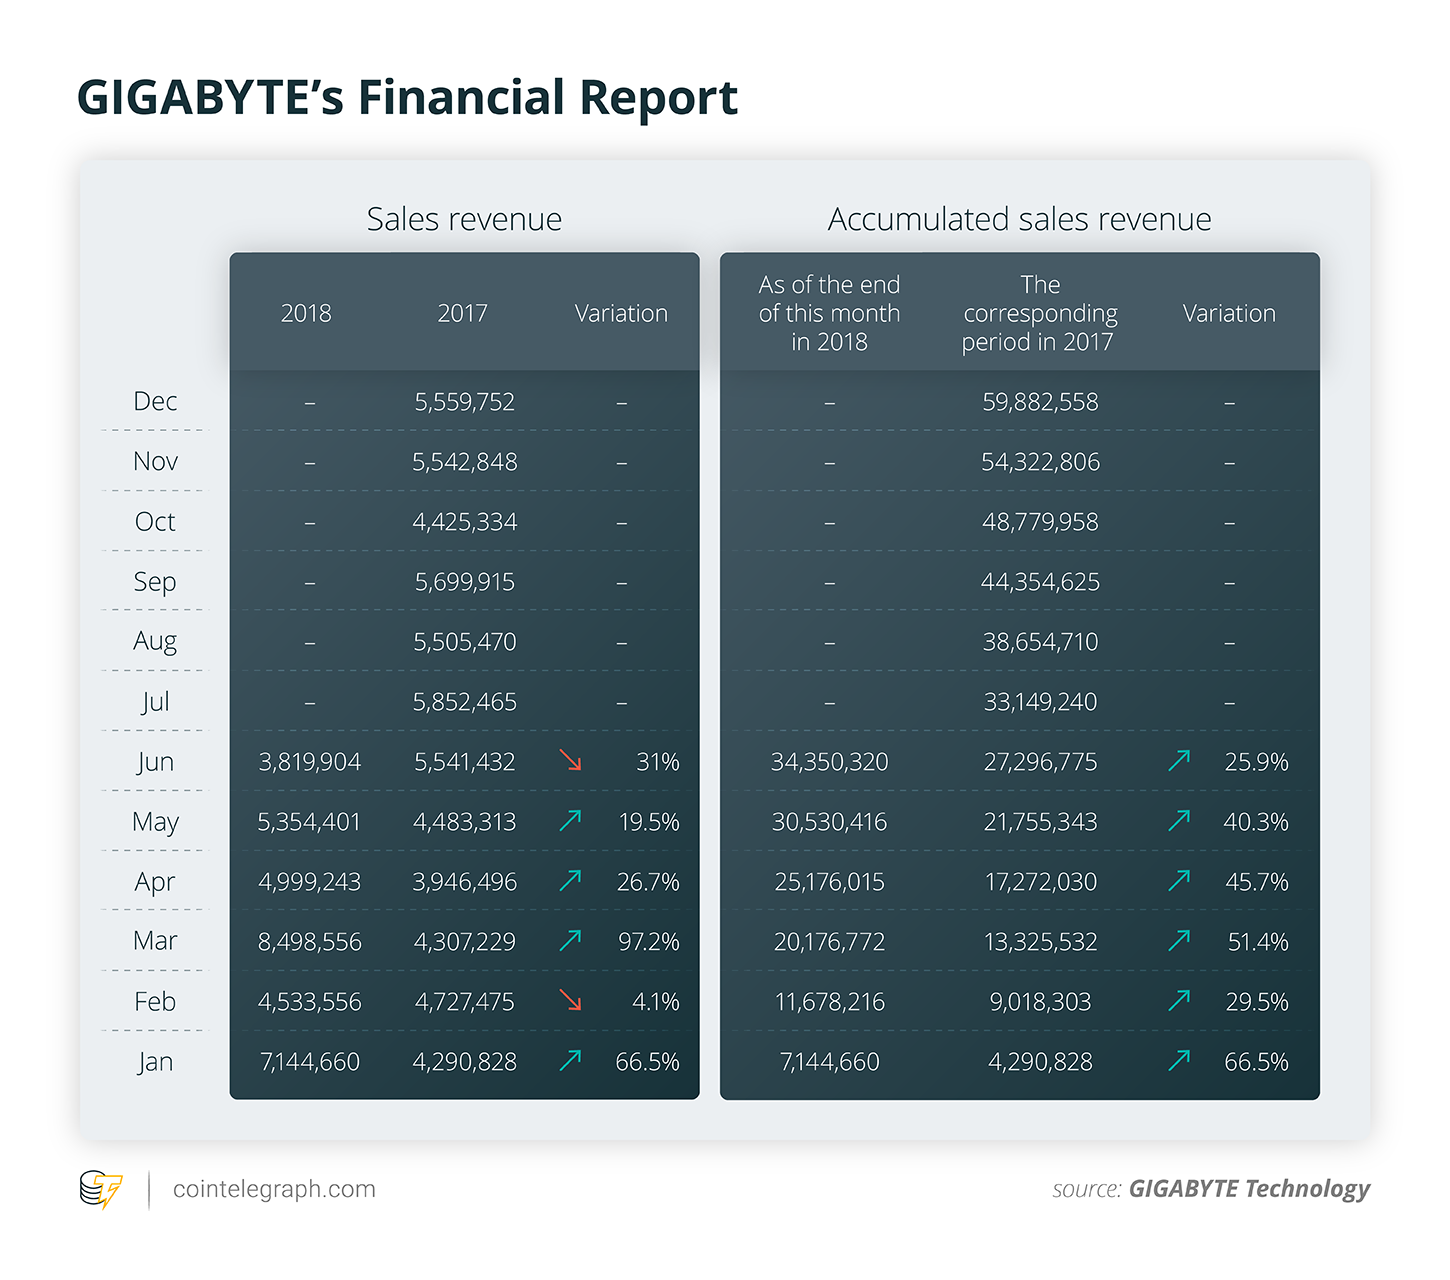 GIGABYTE's Financial Report